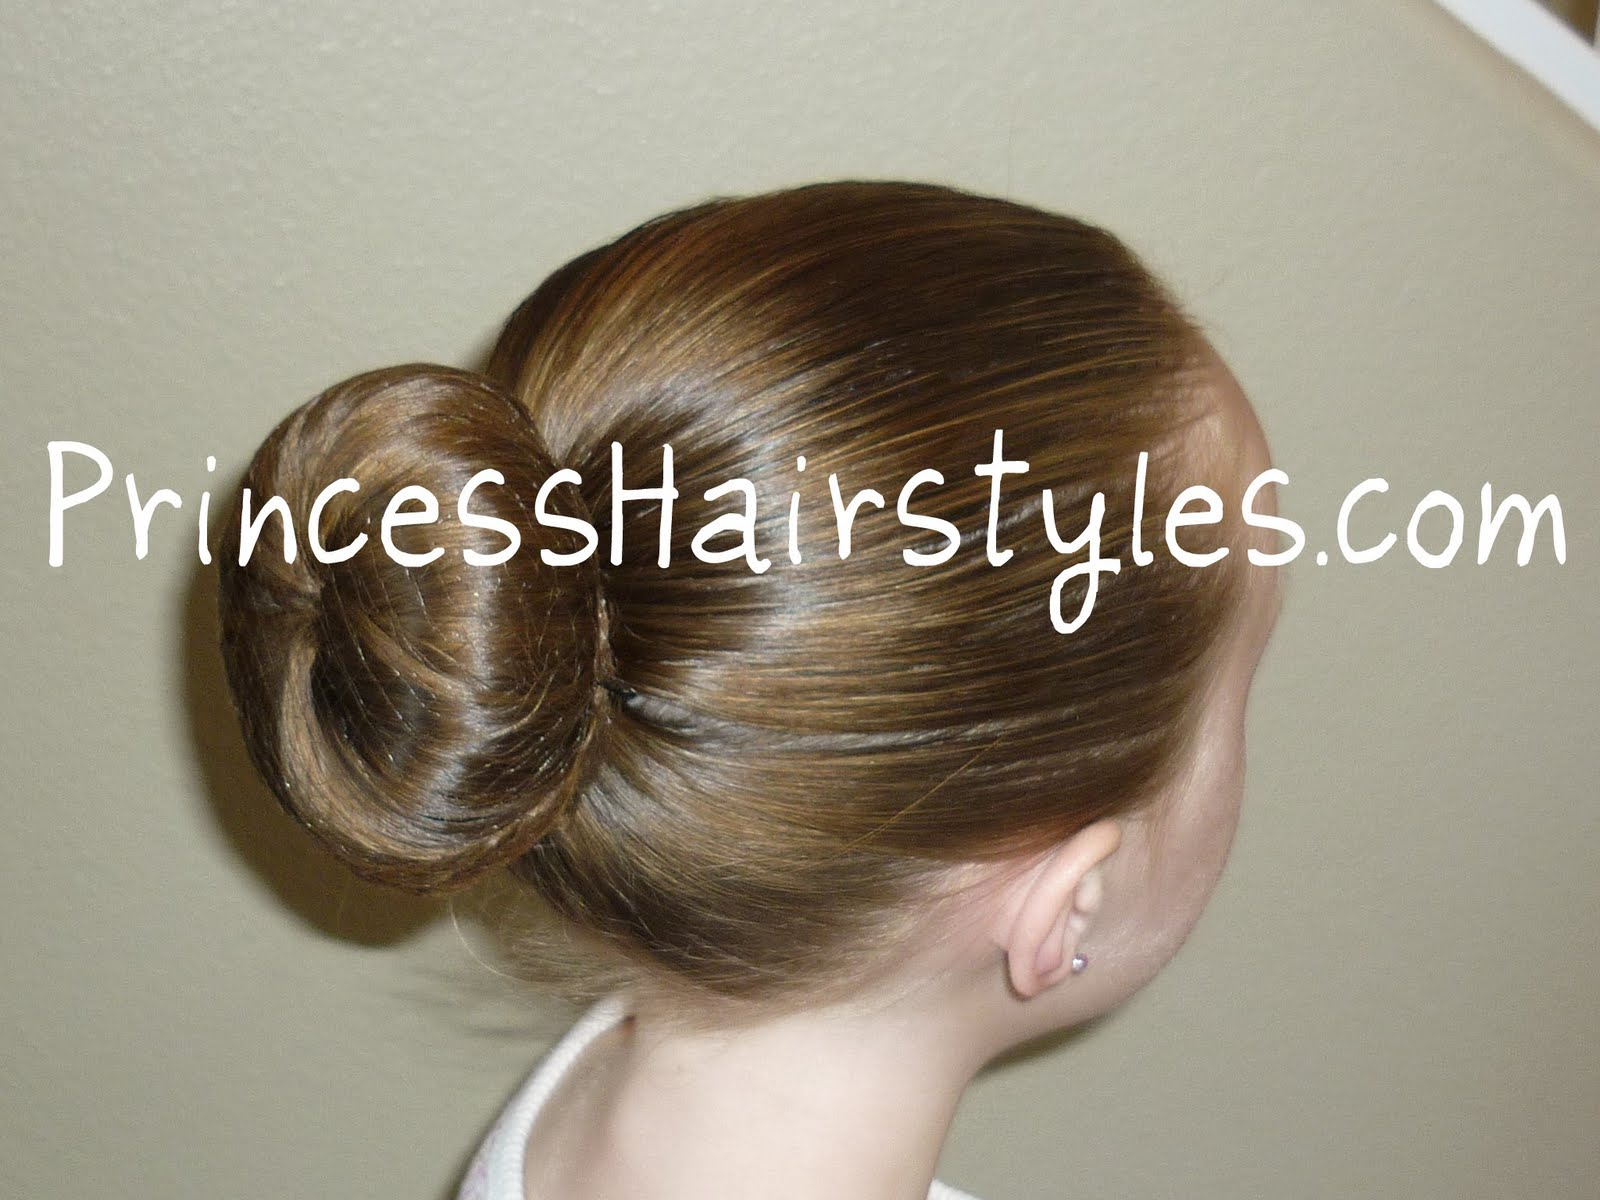 We Posted A Cinderella Hairstyle Awhile Back But Im Thinking This